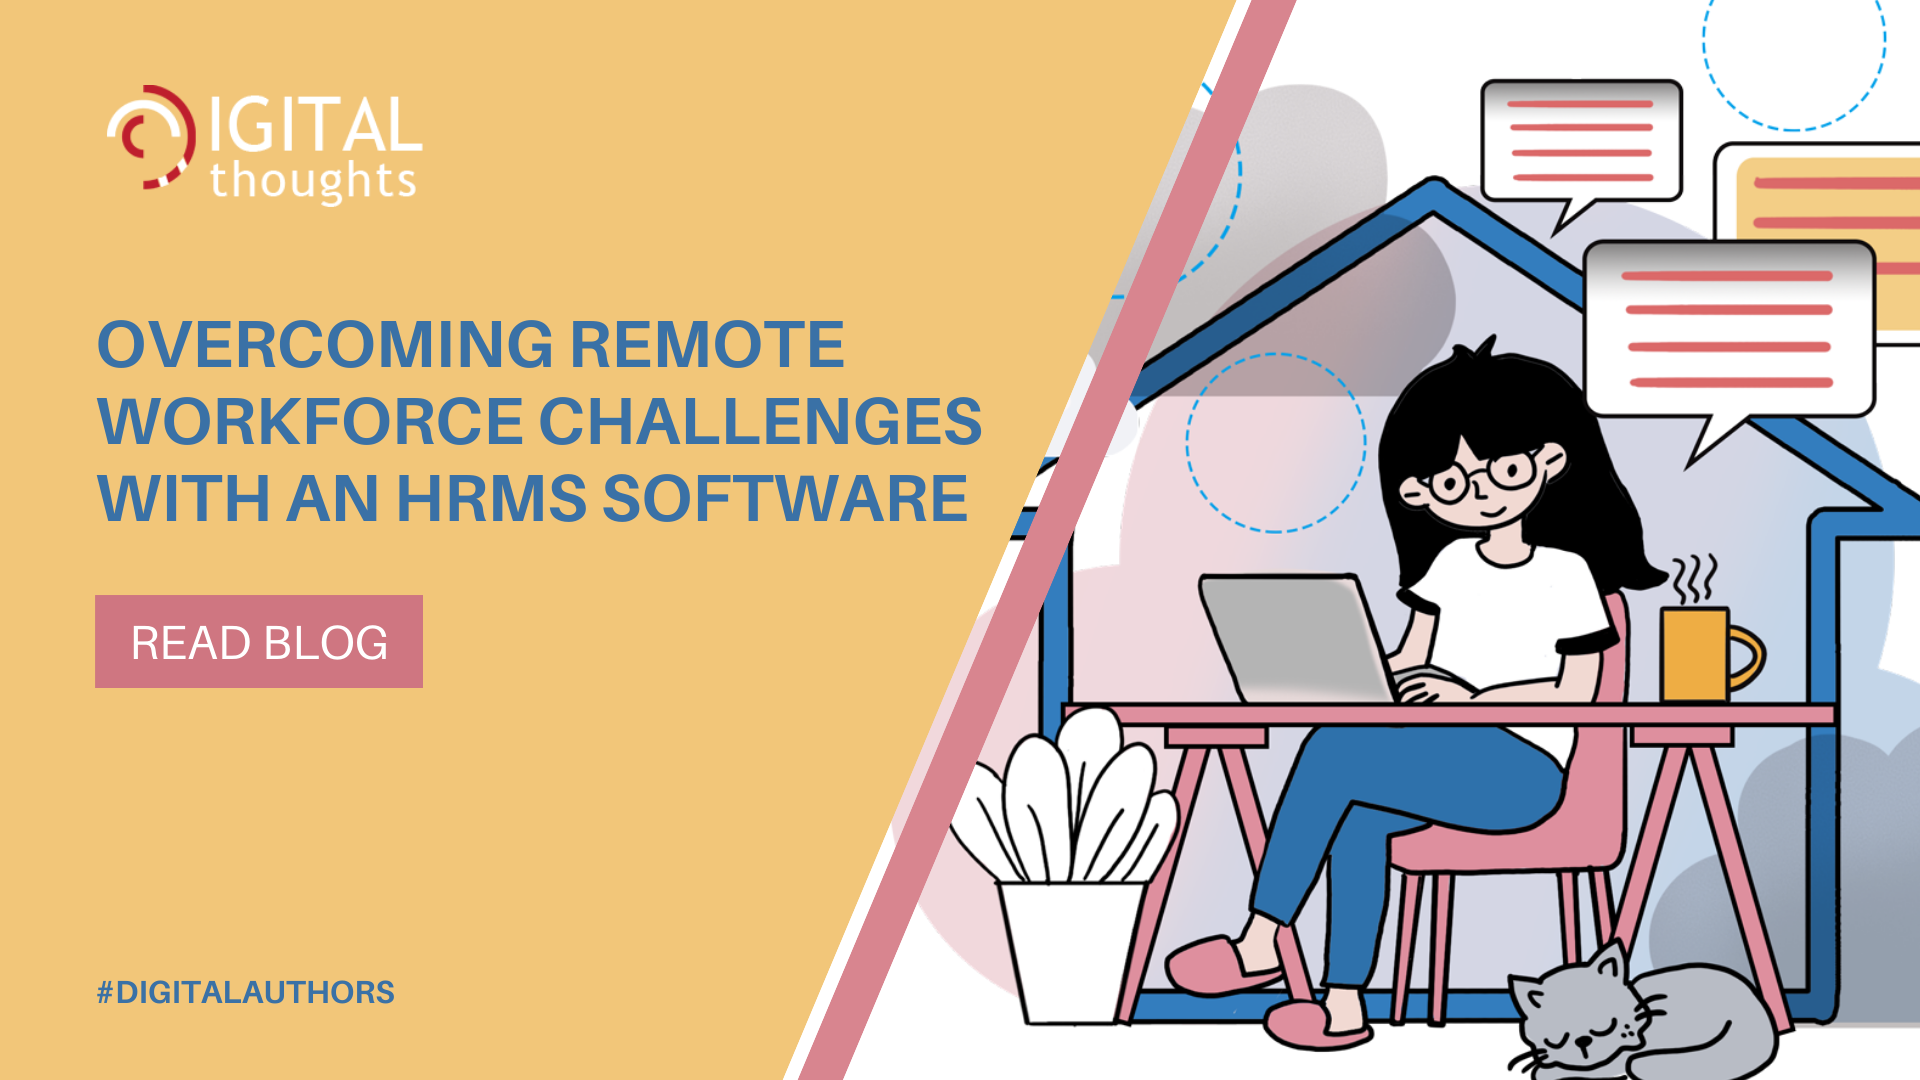 Advanced HR Software as the Solution to Challenges of a Remote Workforce